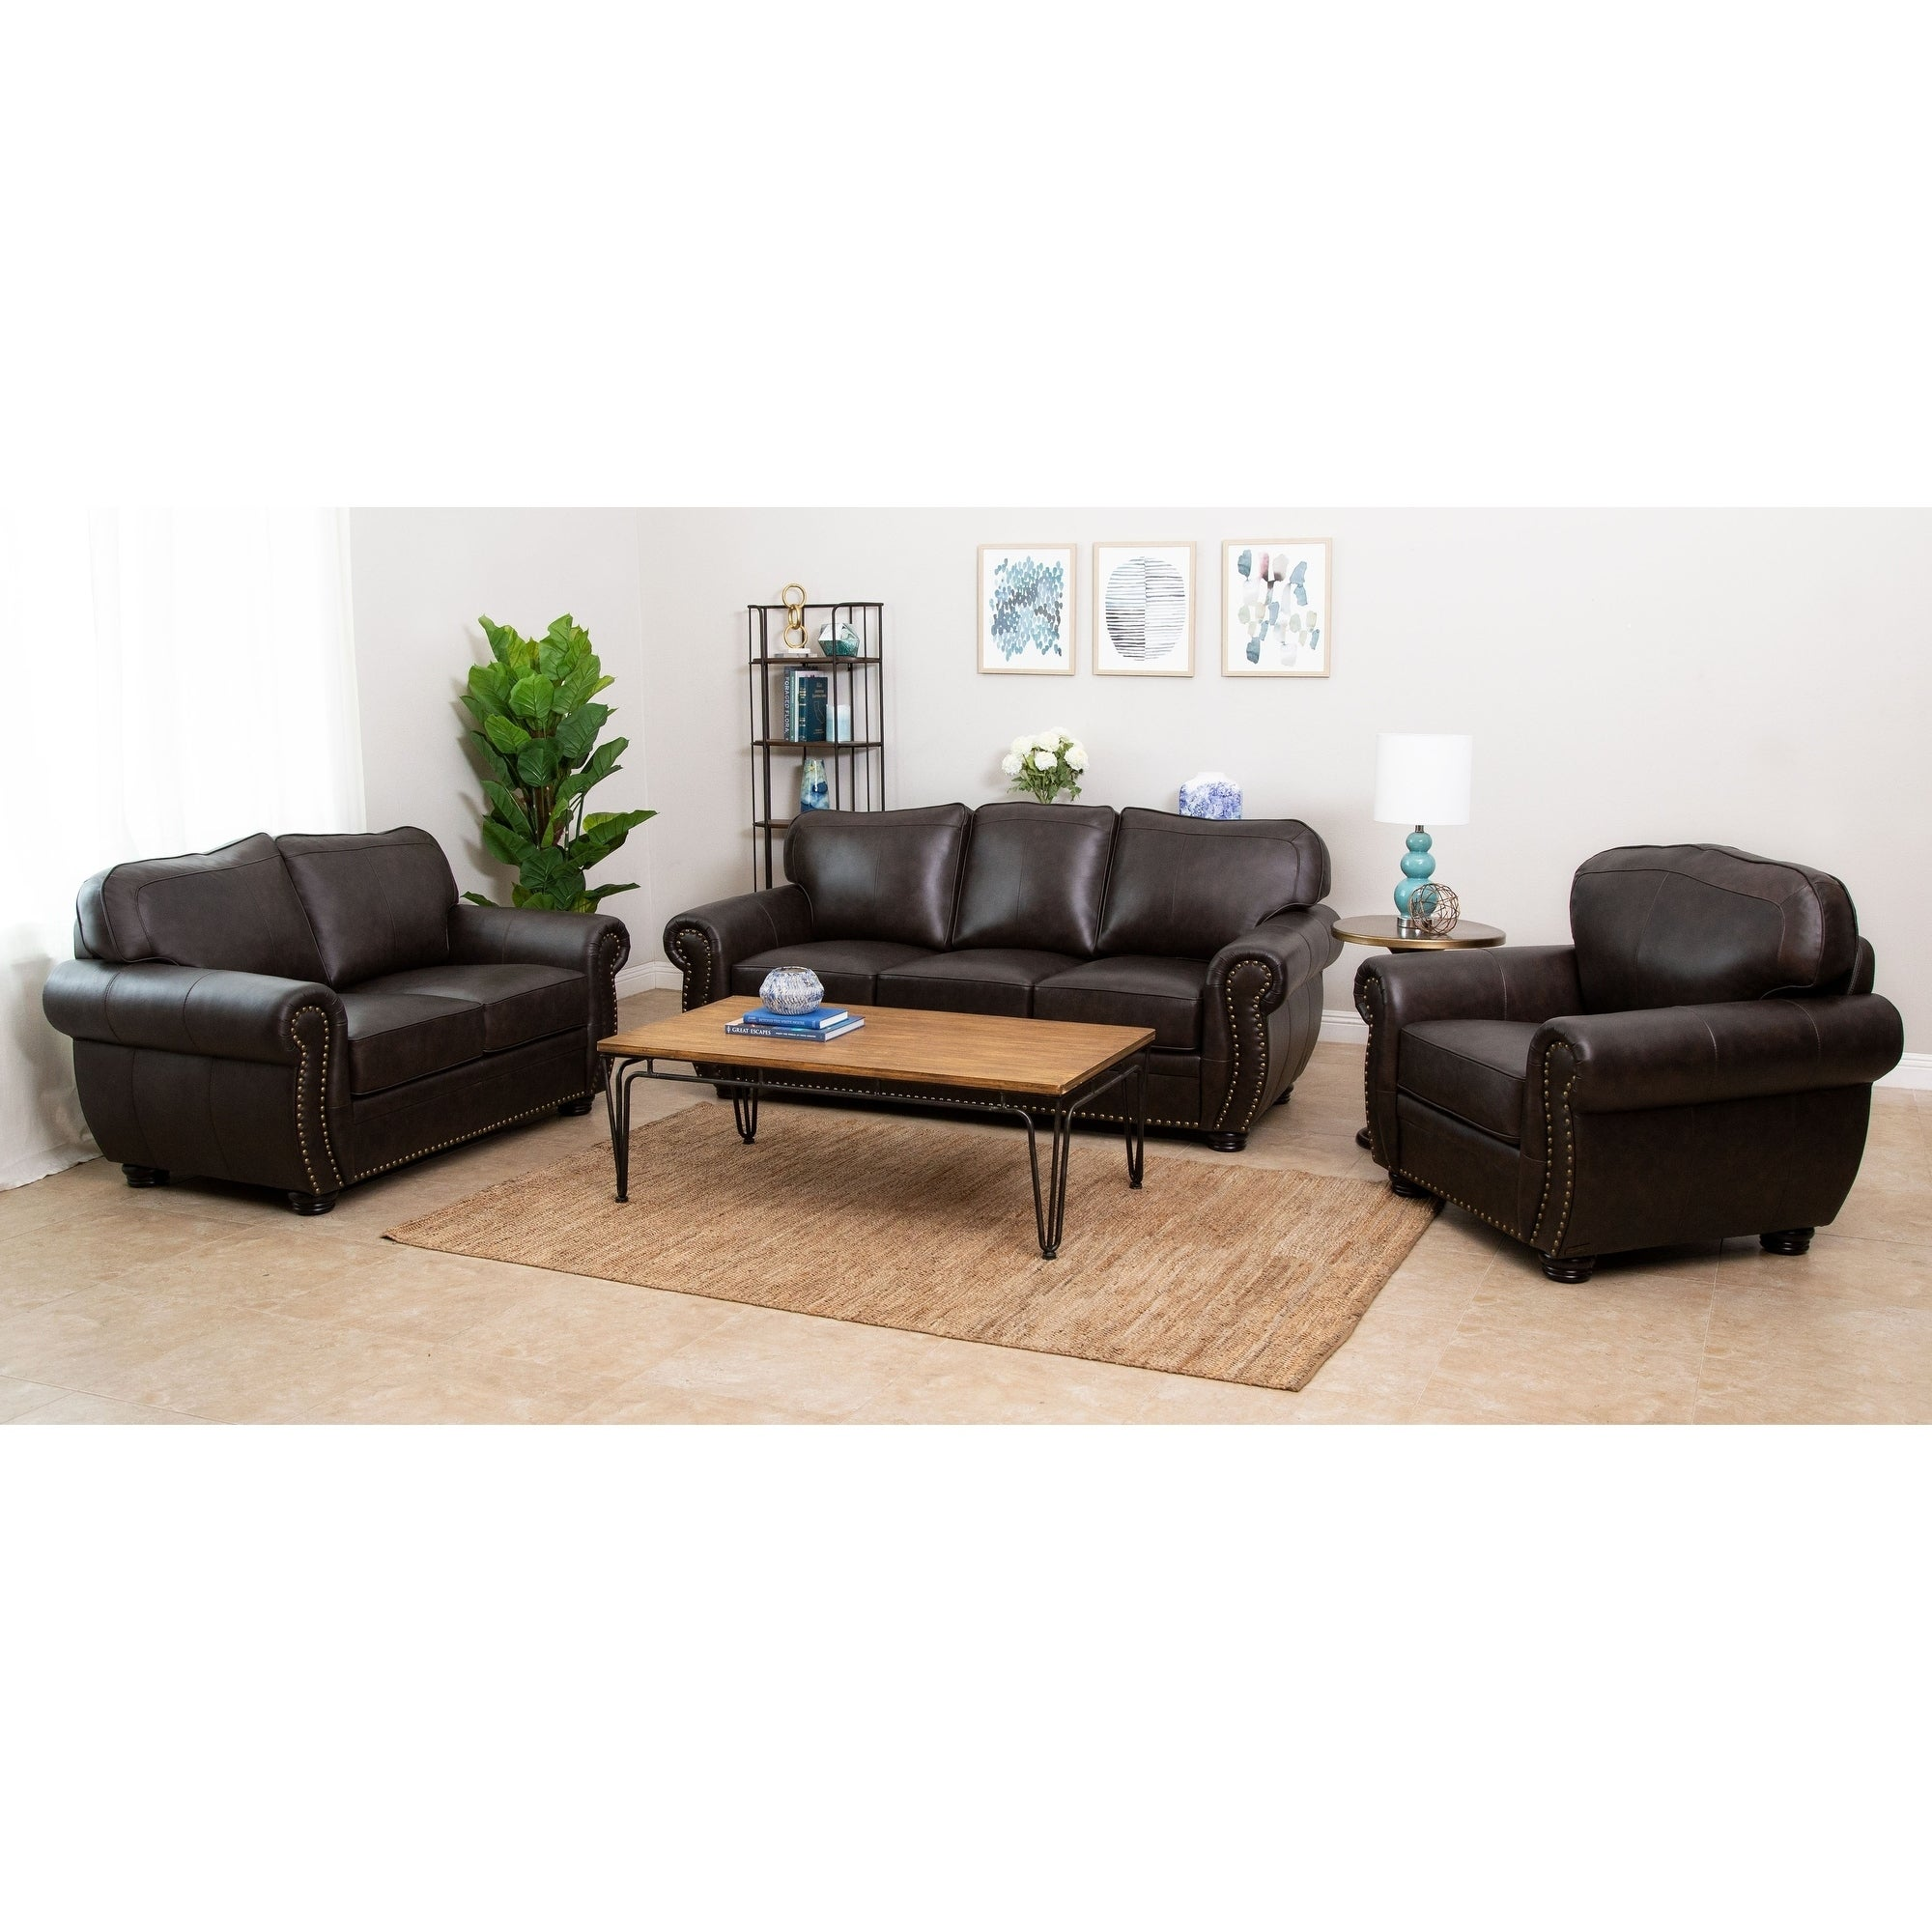 sofa, loveseat, and armchair set. This furniture set features hardwood